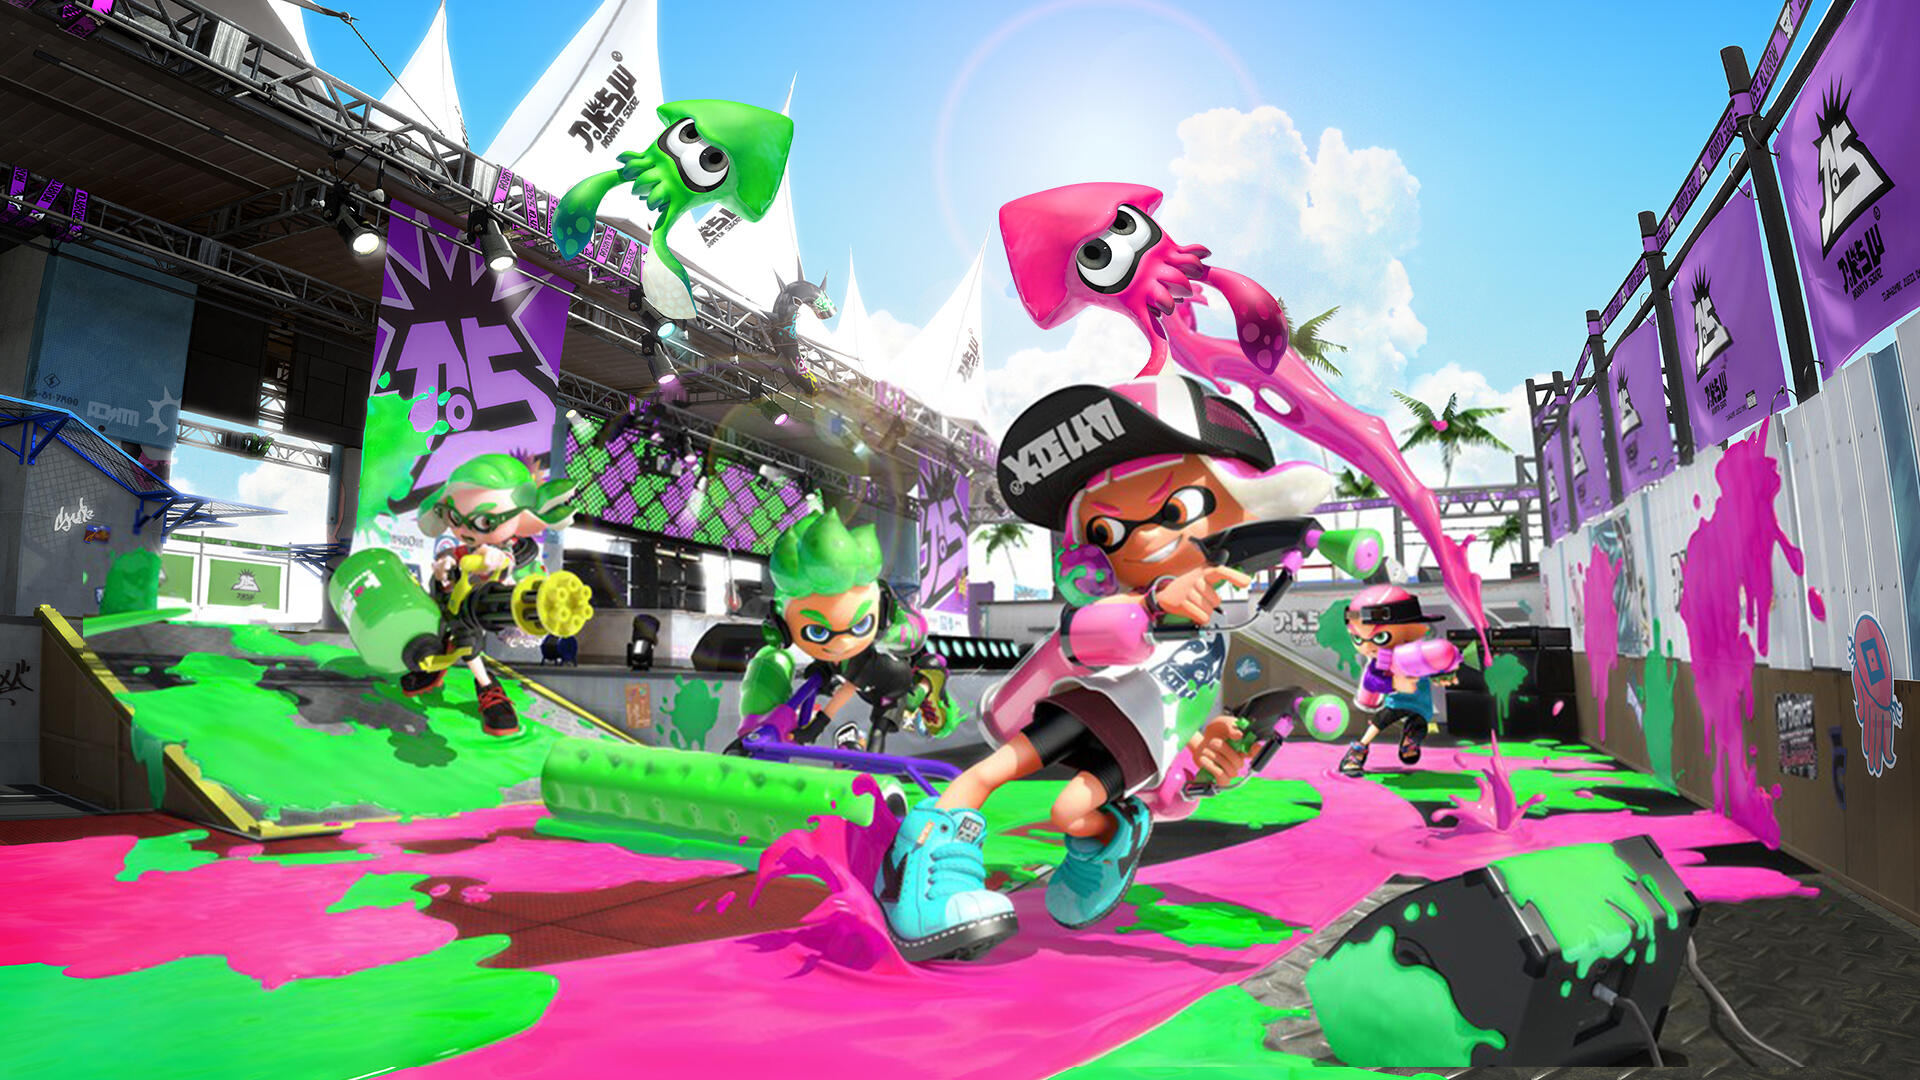 The Final Splatfest May Be Over, But Splatoon 2 Players Aren't Ready To Say Goodbye